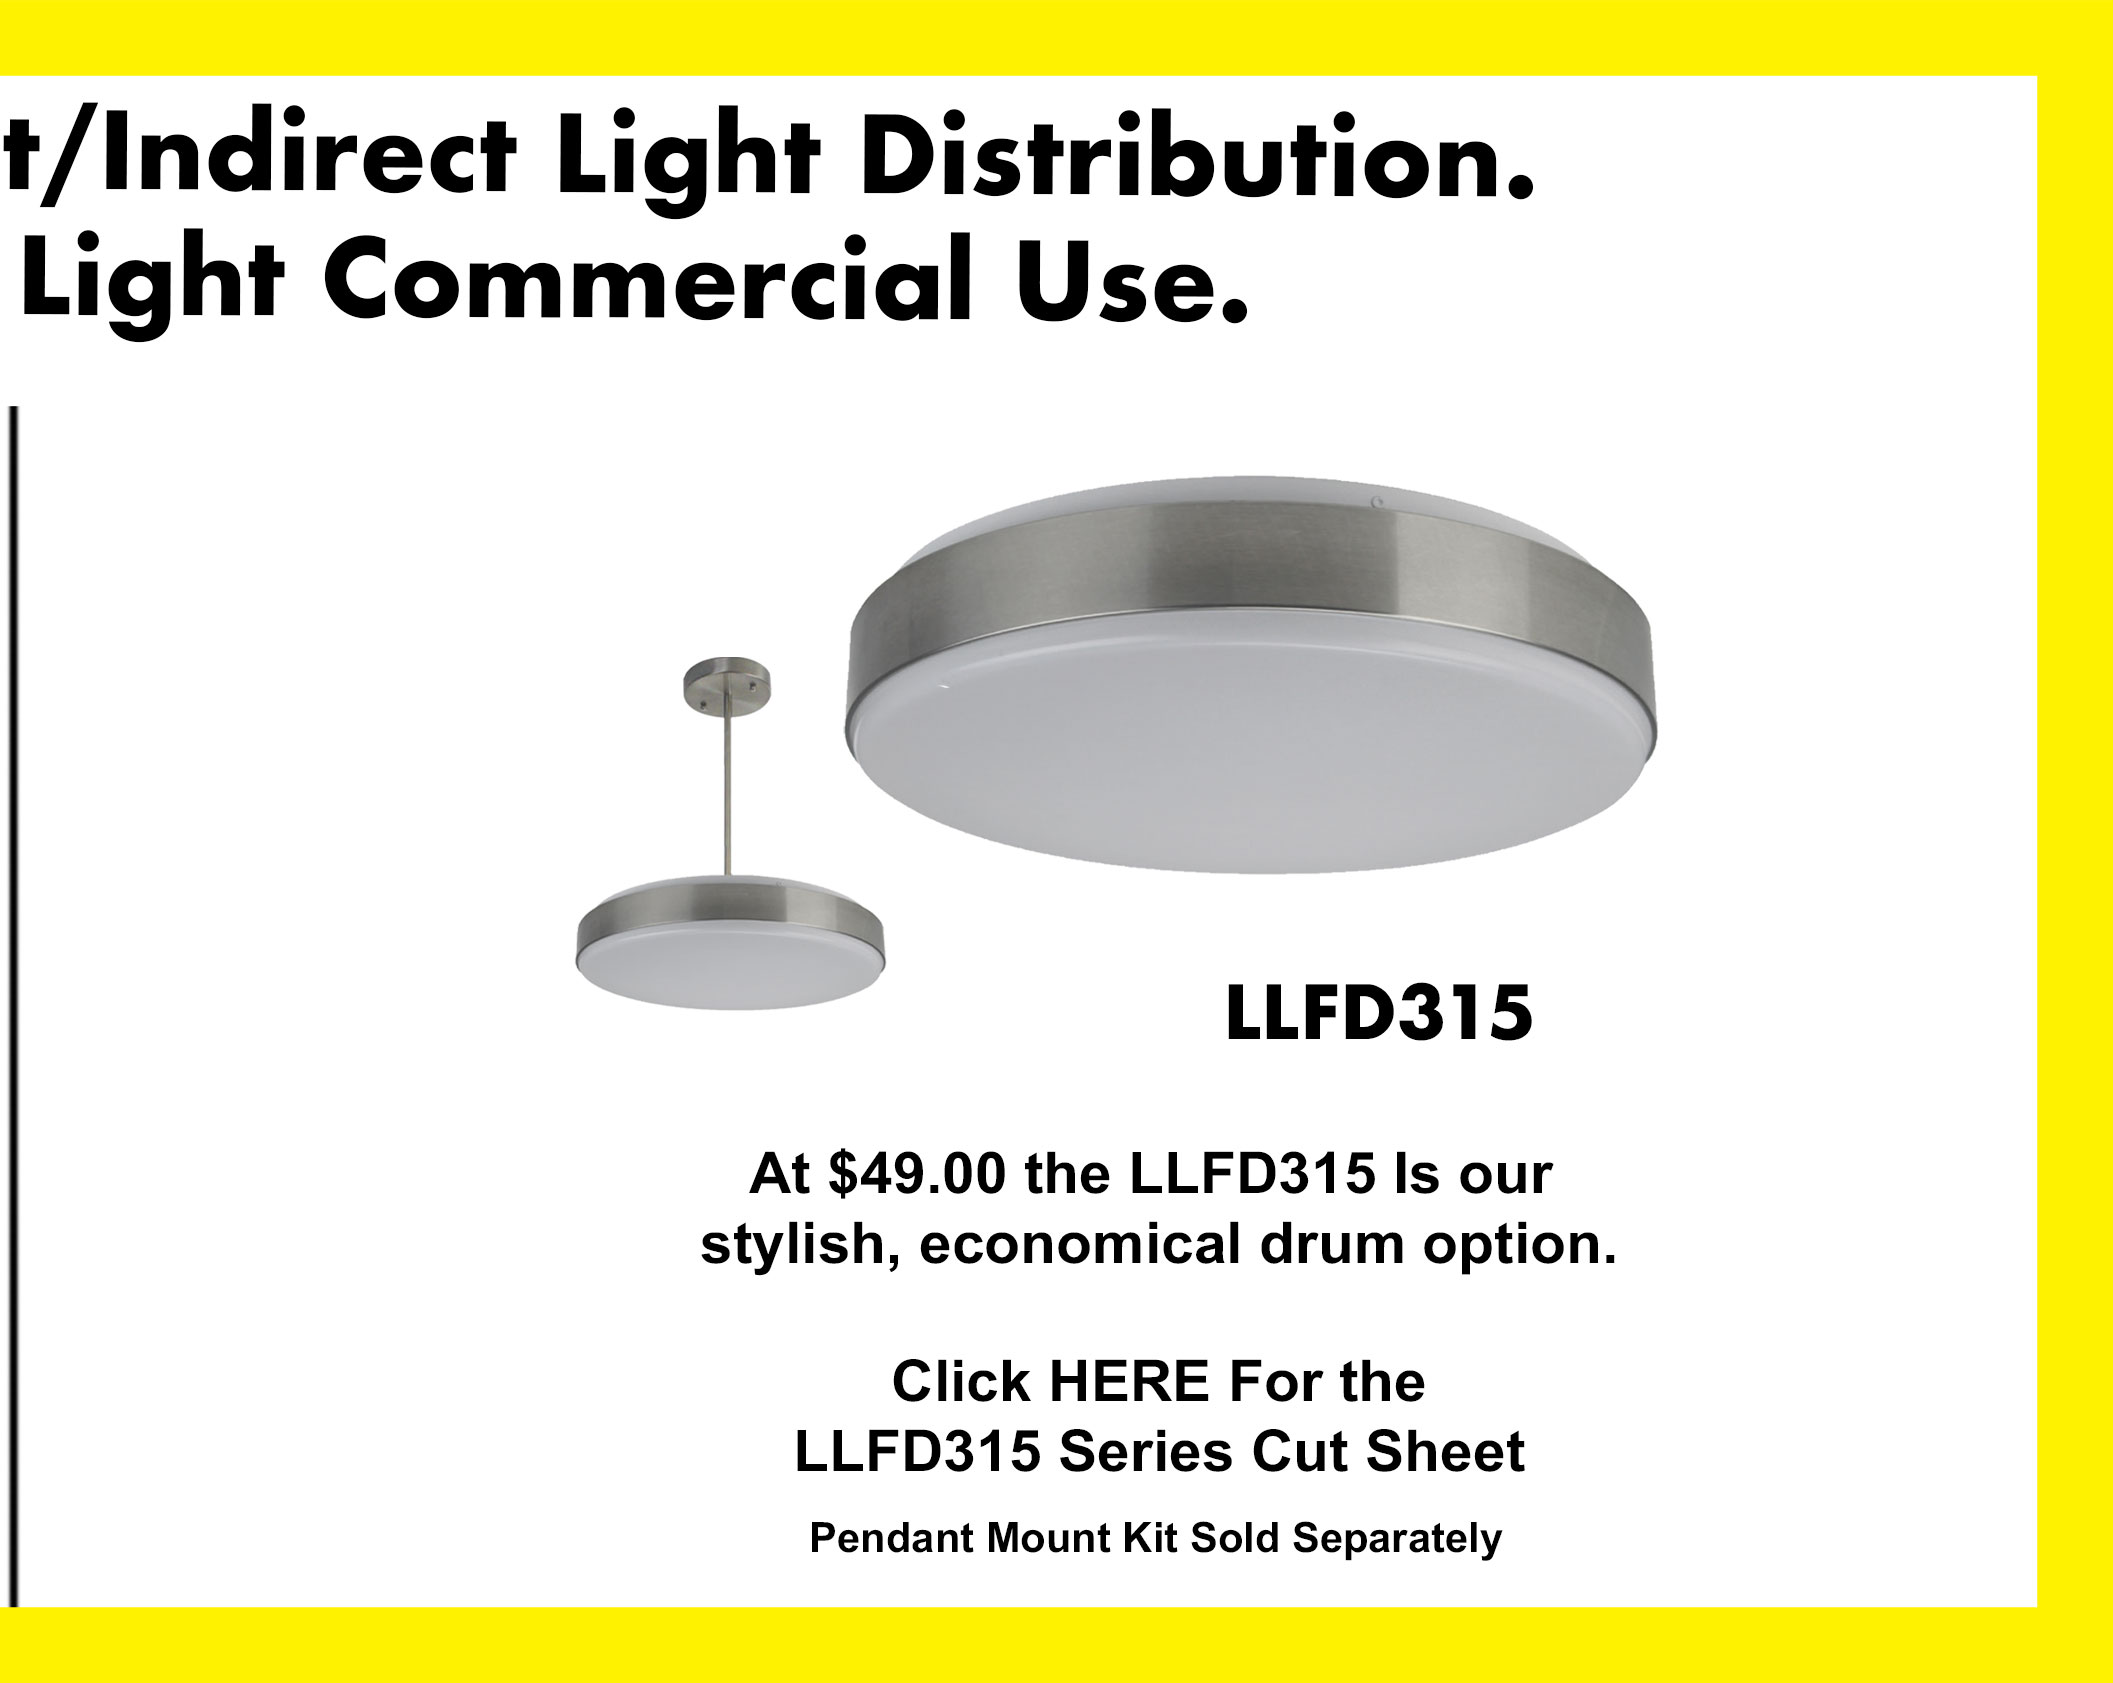 LLFD315-LE1200W-NW,llfd315le1200wnw